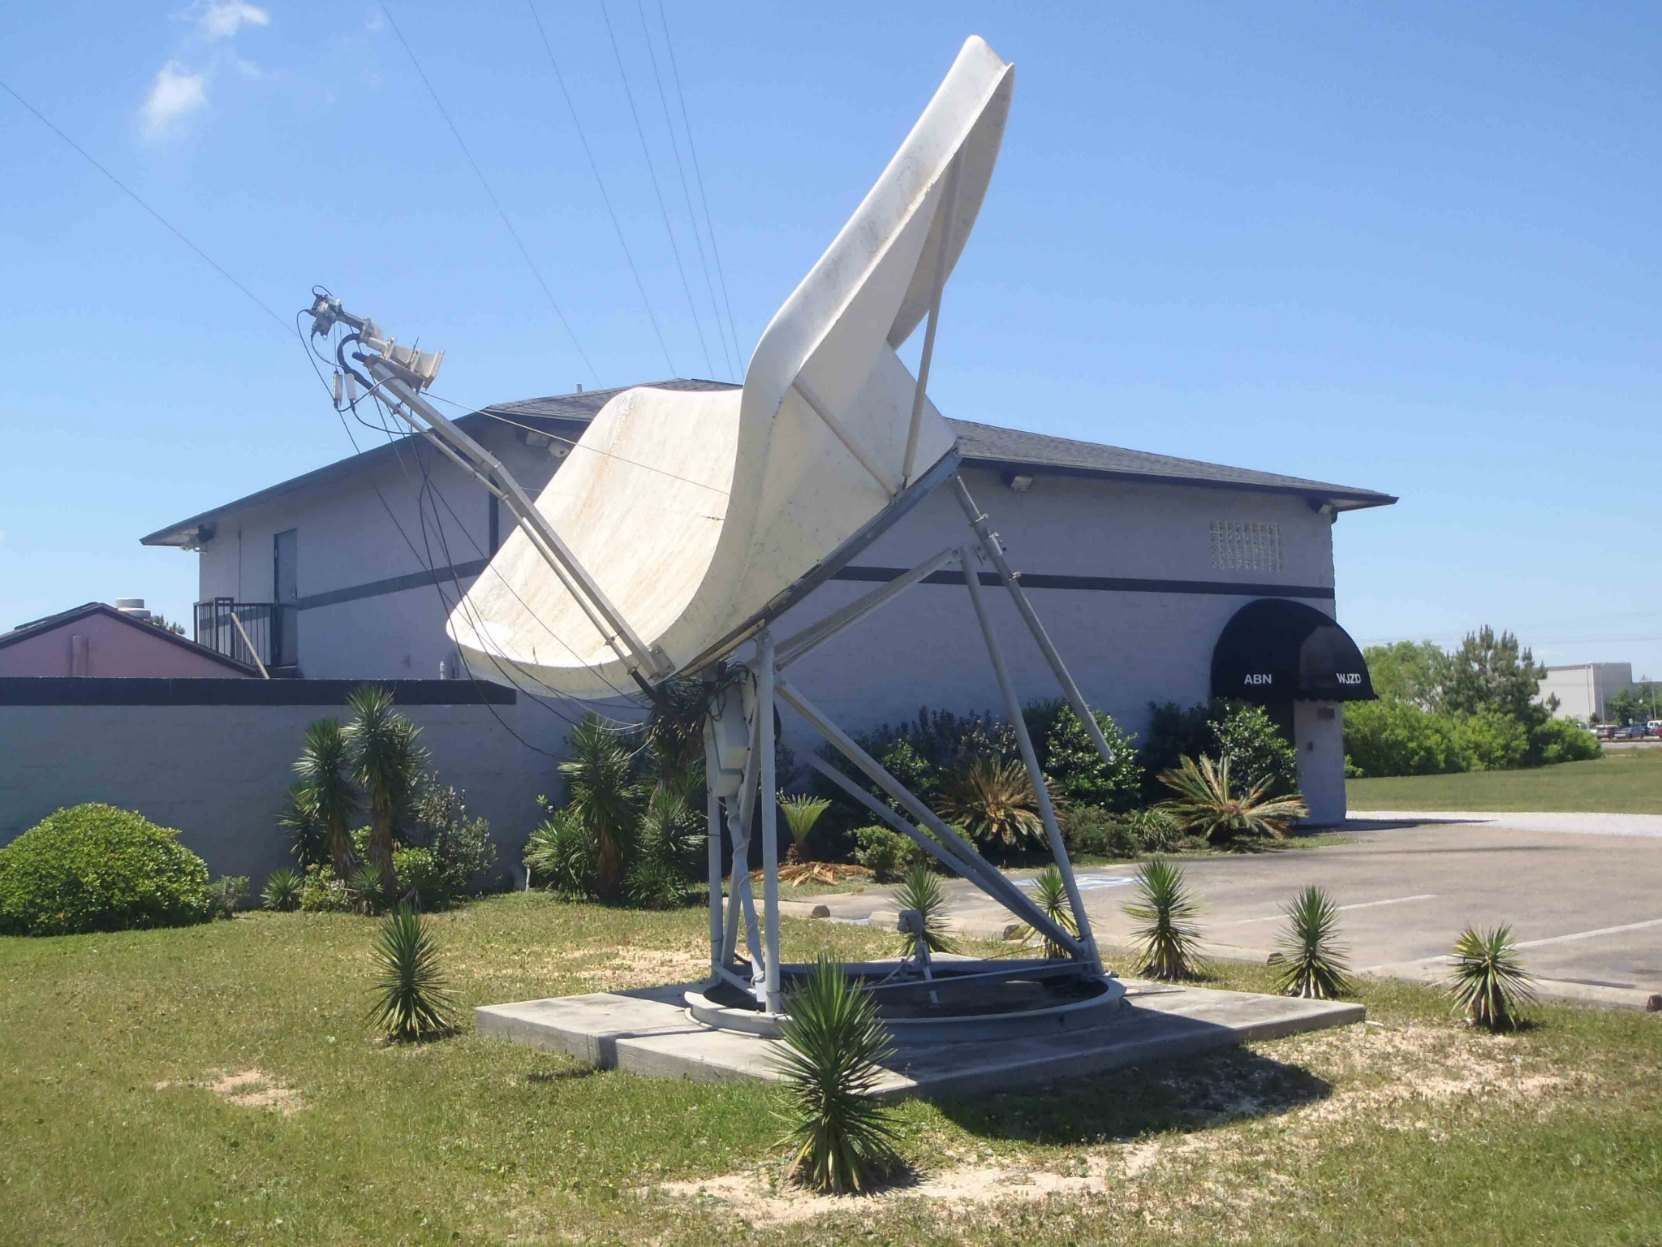 American Blues Network (ABN) studio, Gulfport, Mississippi